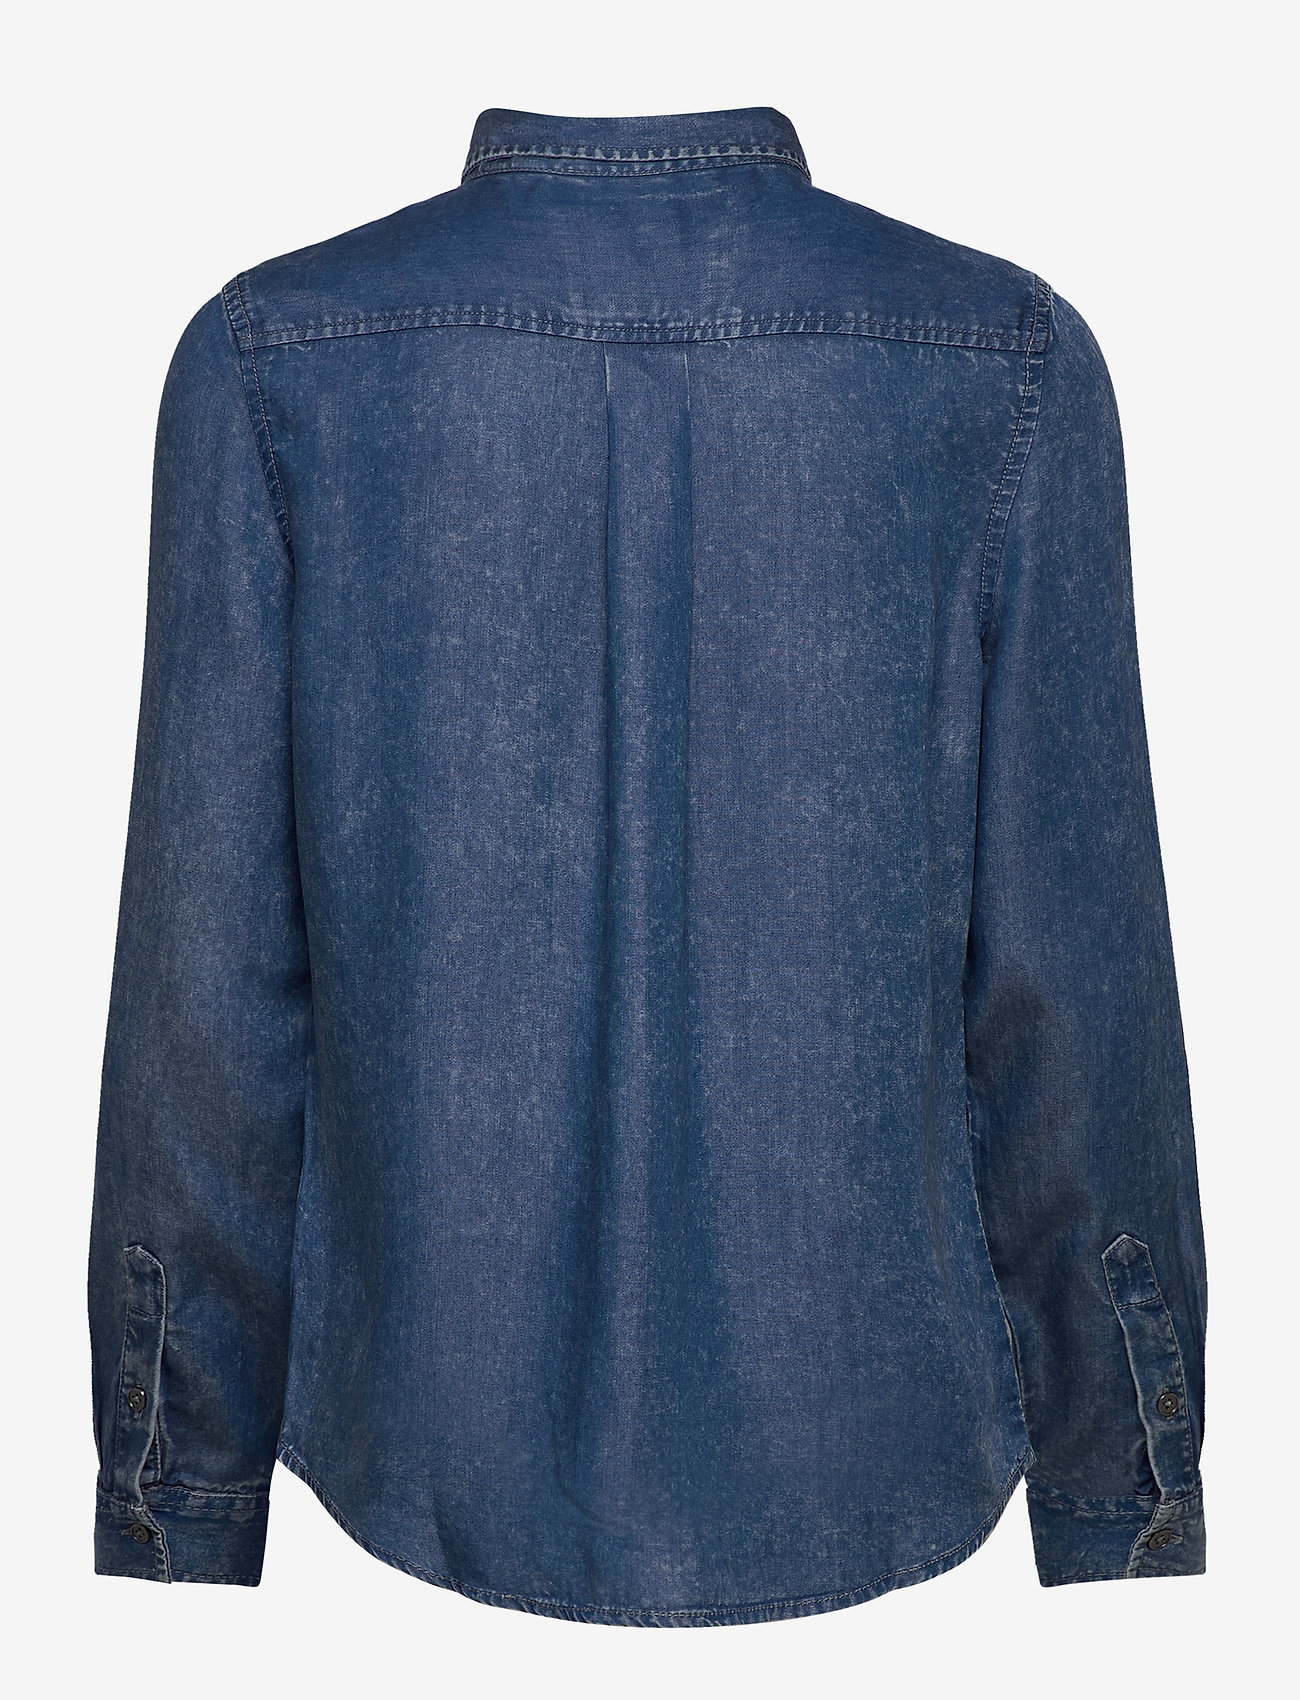 Superdry - XENIA ACID WASH SHIRT - jeansblouses - blue acid wash - 1